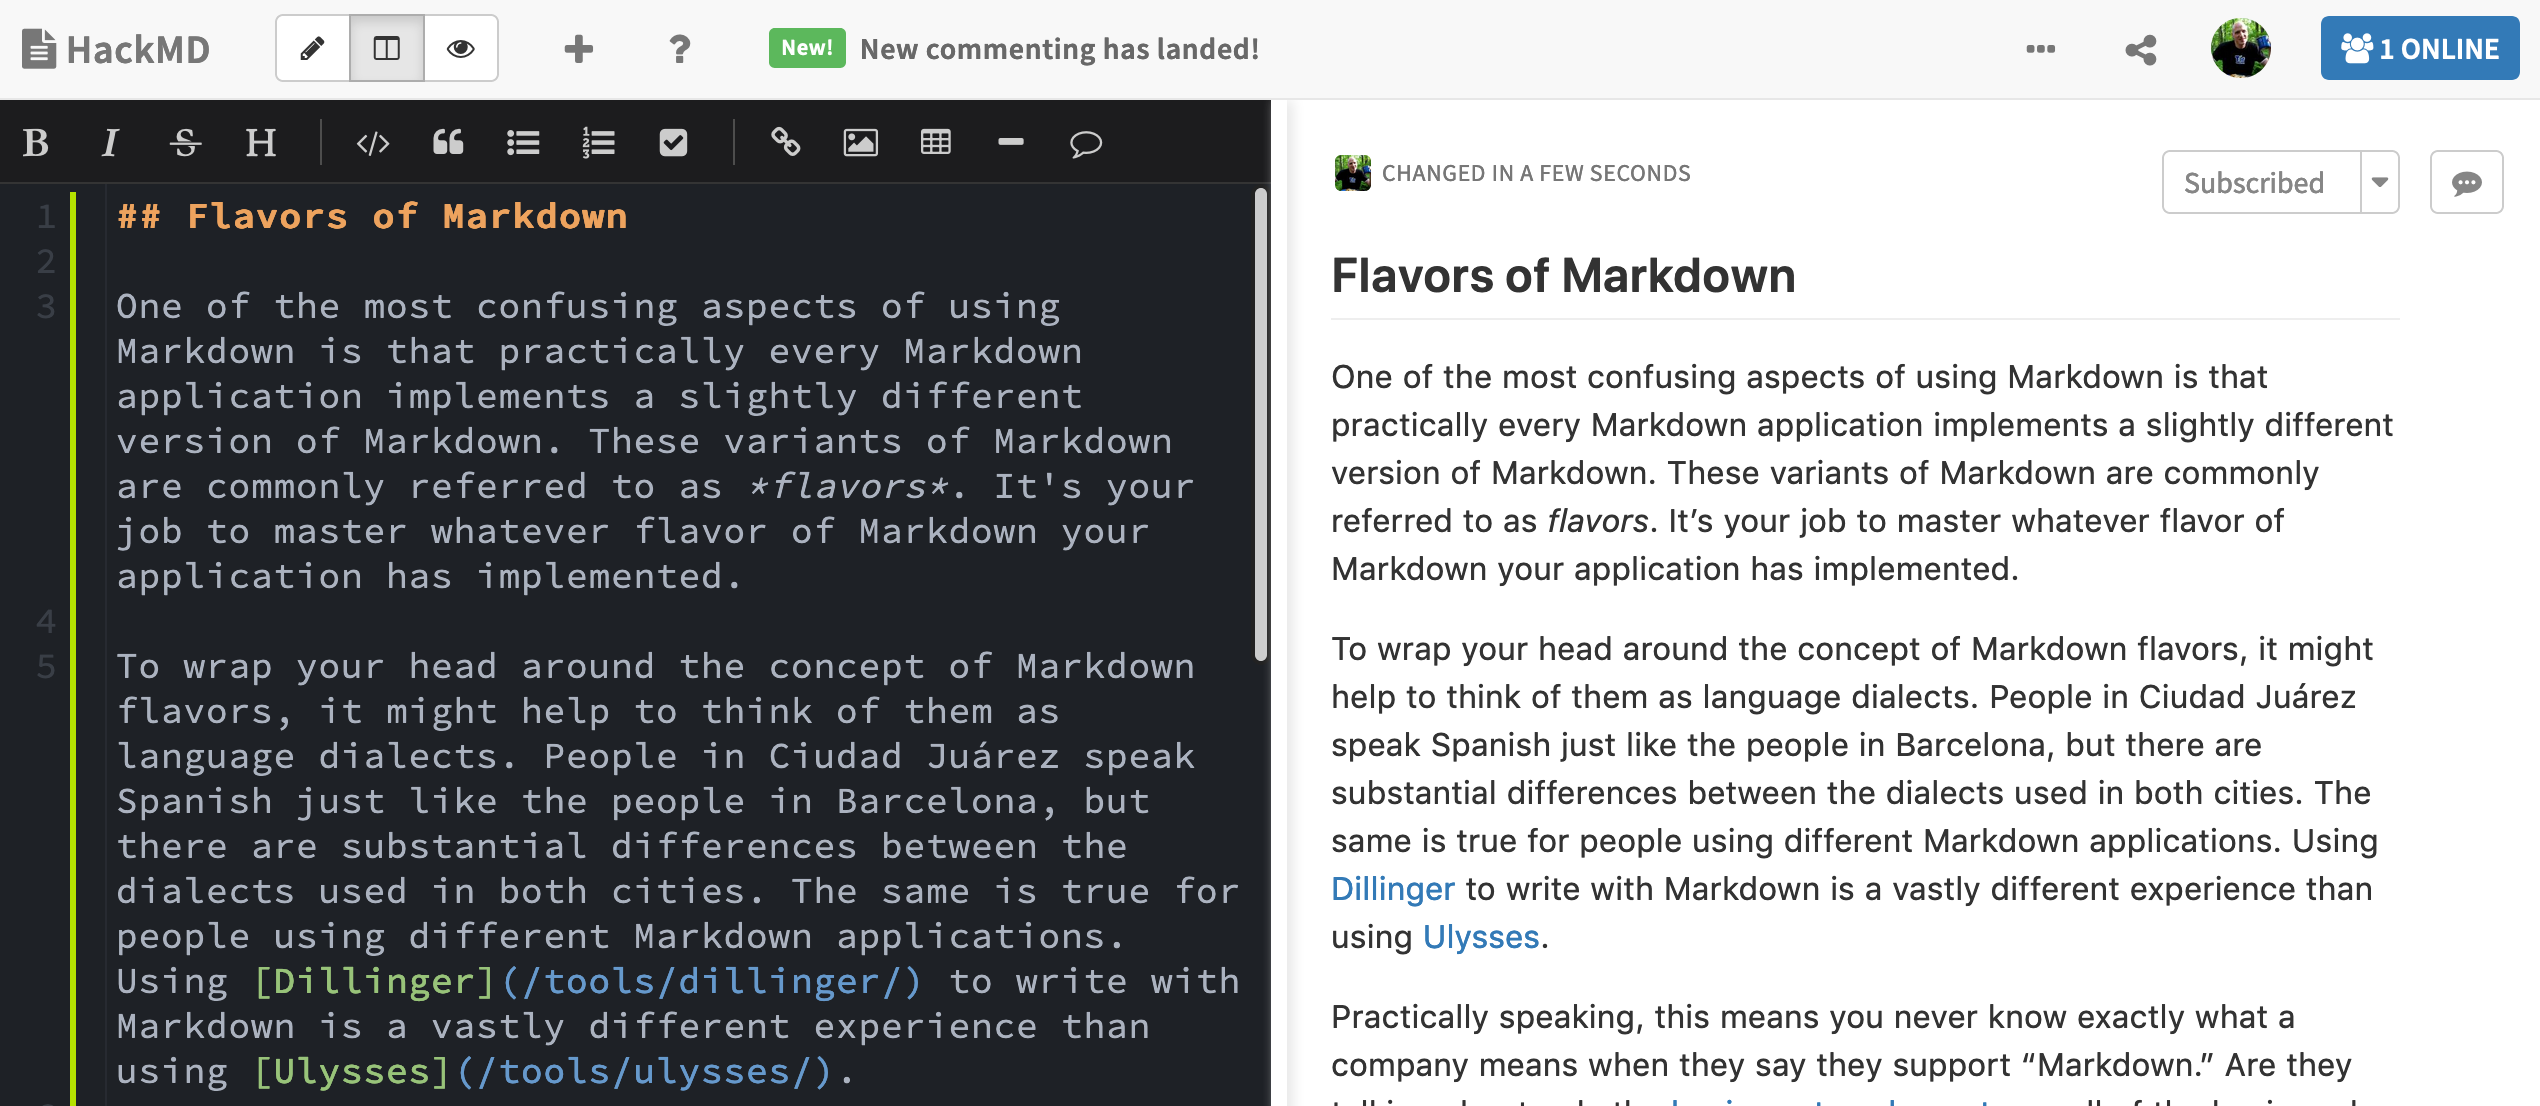 The HackMD Markdown interface